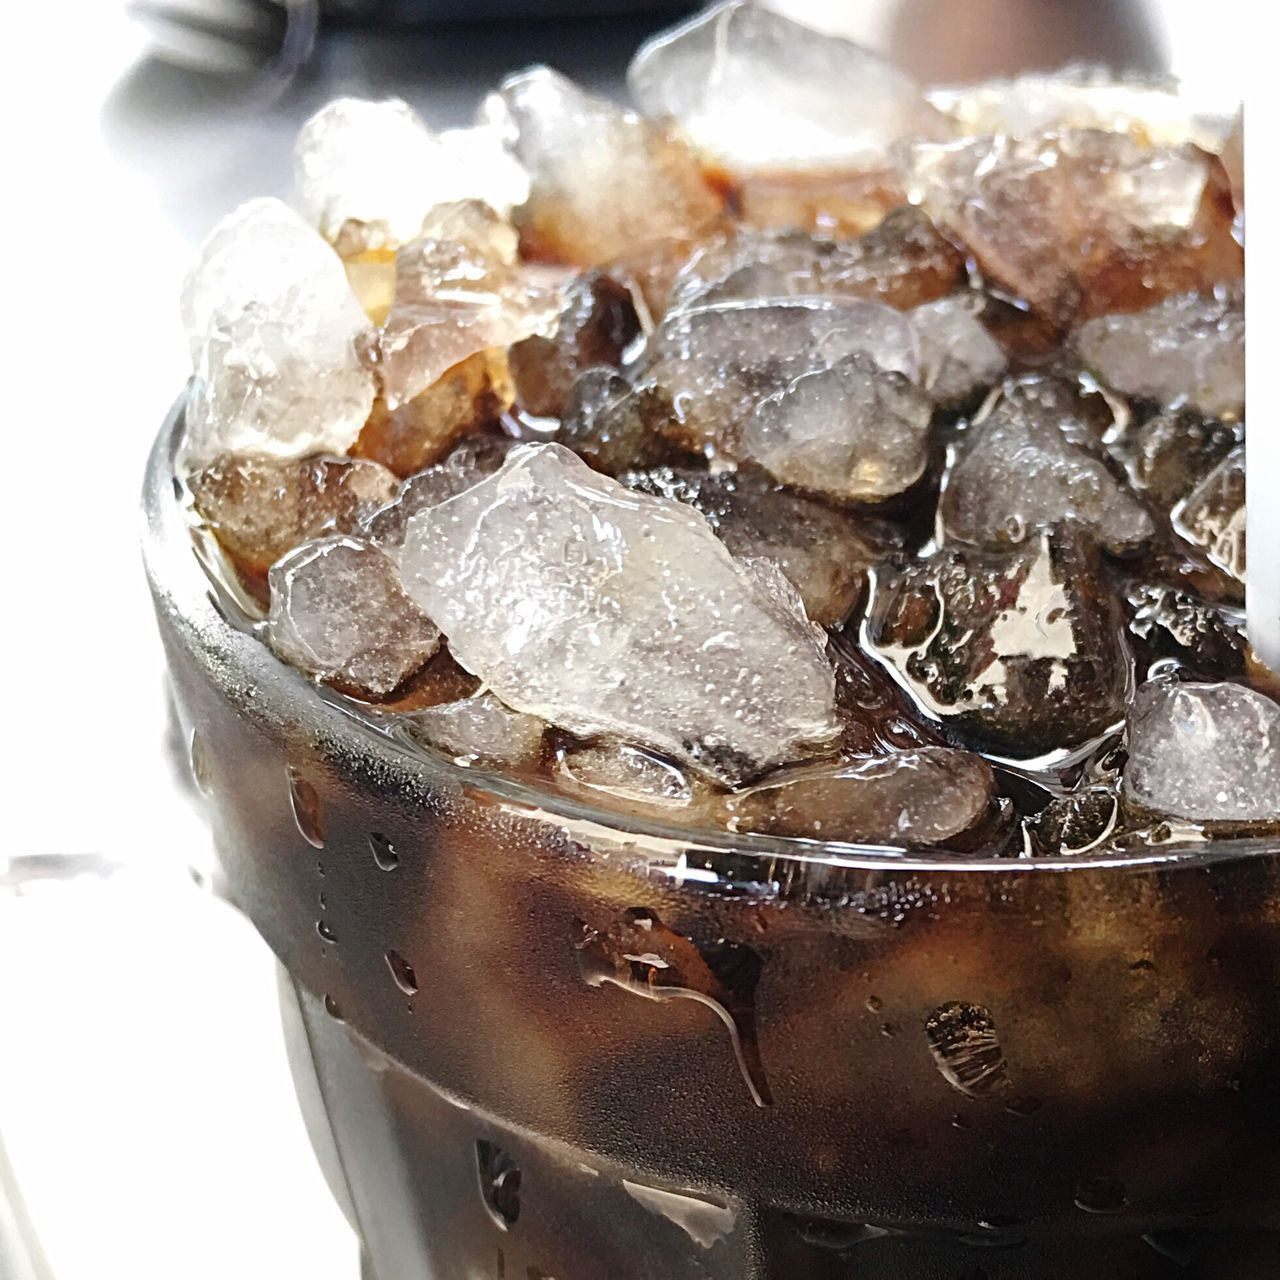 Ice Coffee Coffee Drink Ice Cube Ice Food And Drink Cold Temperature Refreshment Close-up Freshness Drinking Glass No People Indoors  Day Drinking Drinking Coffee Coffee Time Coffee Cup Coffee Break Ice Ice Rink